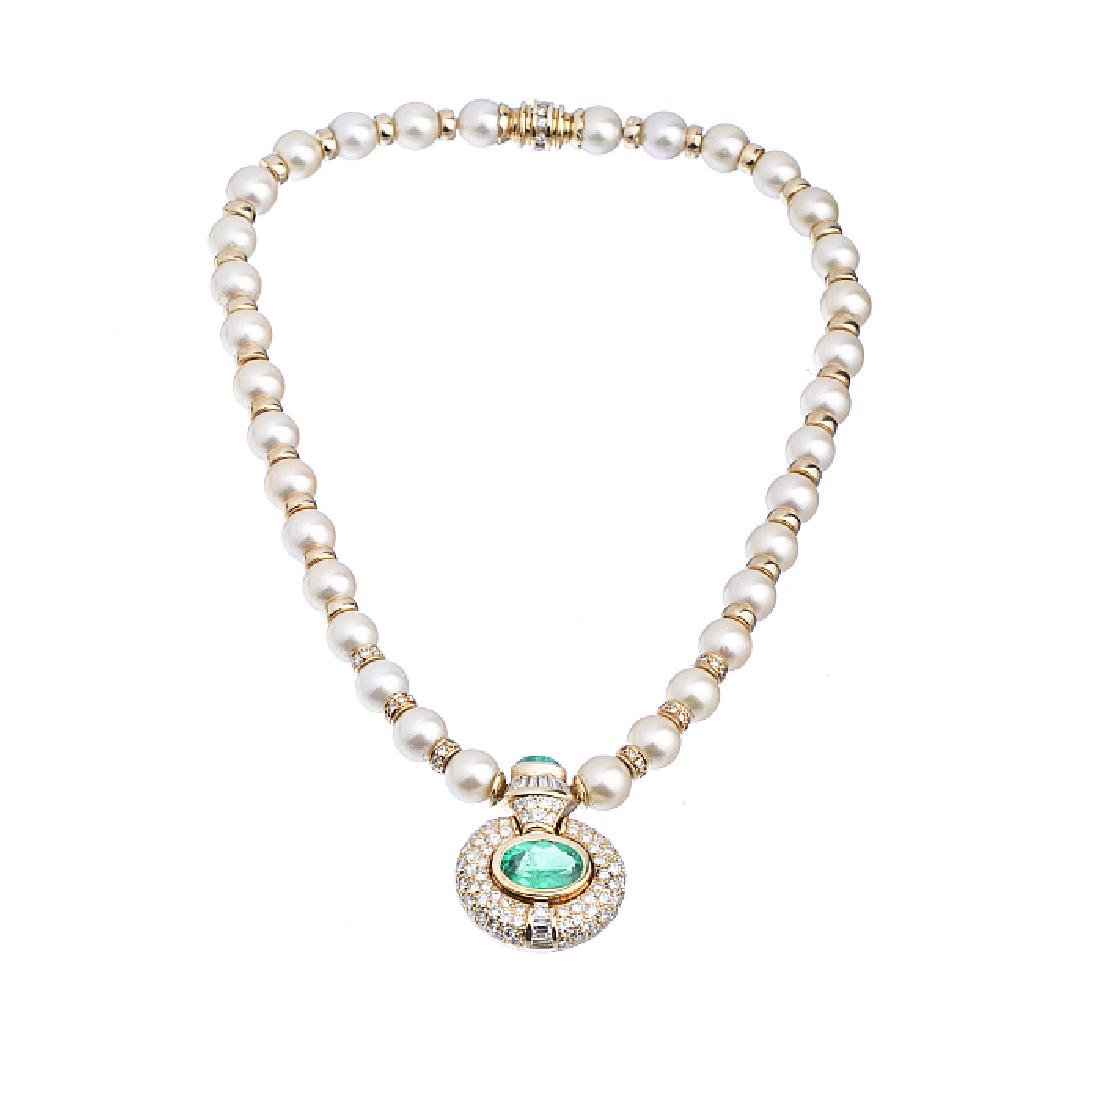 Gold necklace with diamonds, cultured pearls, and